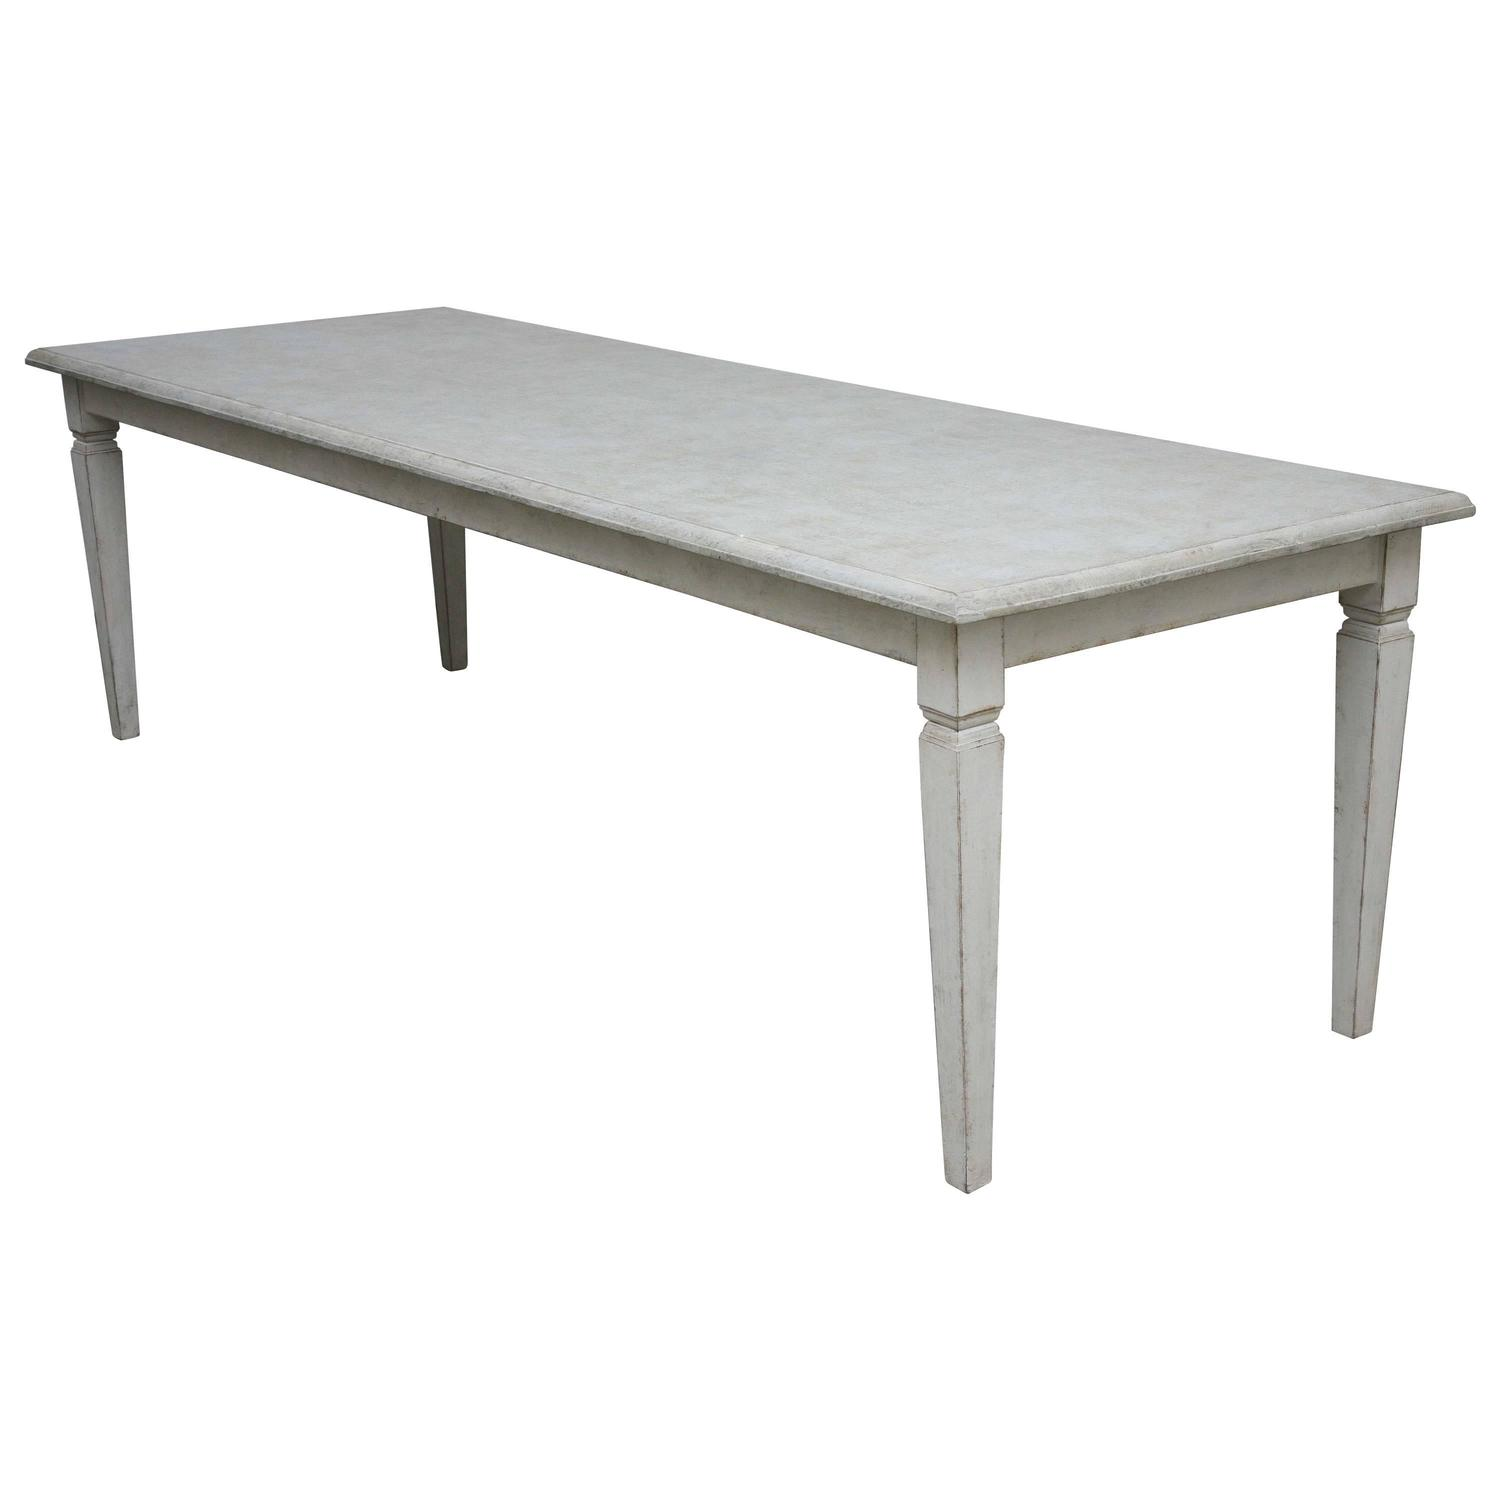 Long Dining Tables For Sale: Antique Long Swedish Painted Dining Farm Table Late 19th